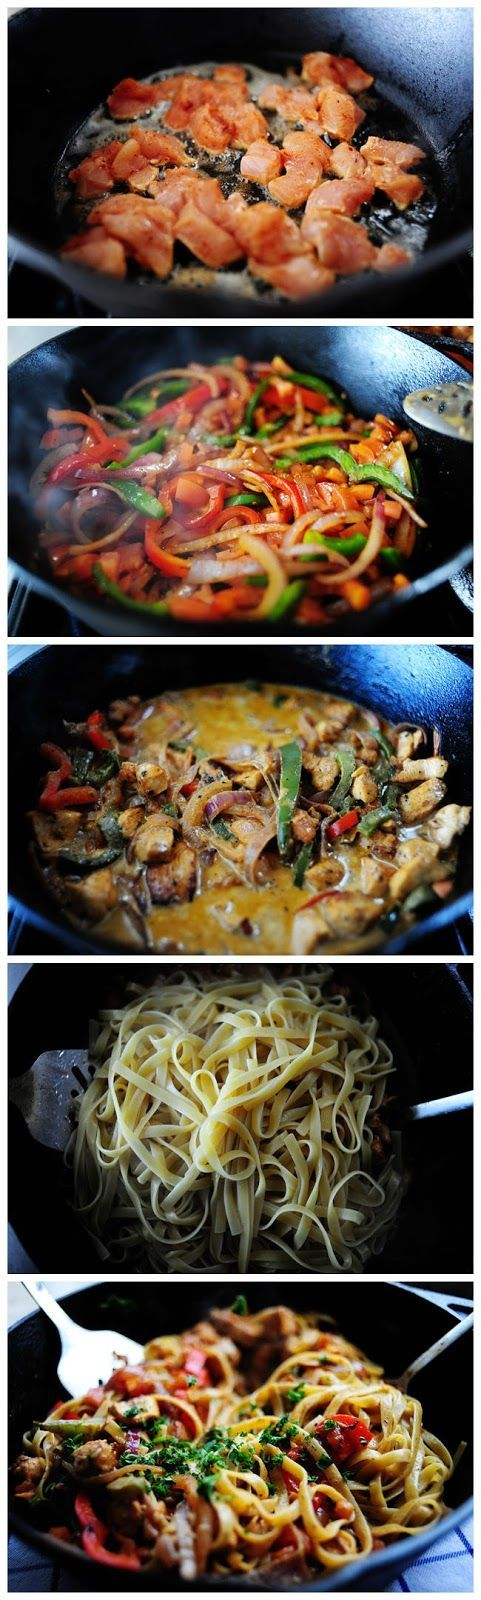 Cajun Chicken Pasta. This was A-Mazing! Planned to do it with spaghetti squash, but ended up just eating the sauce.